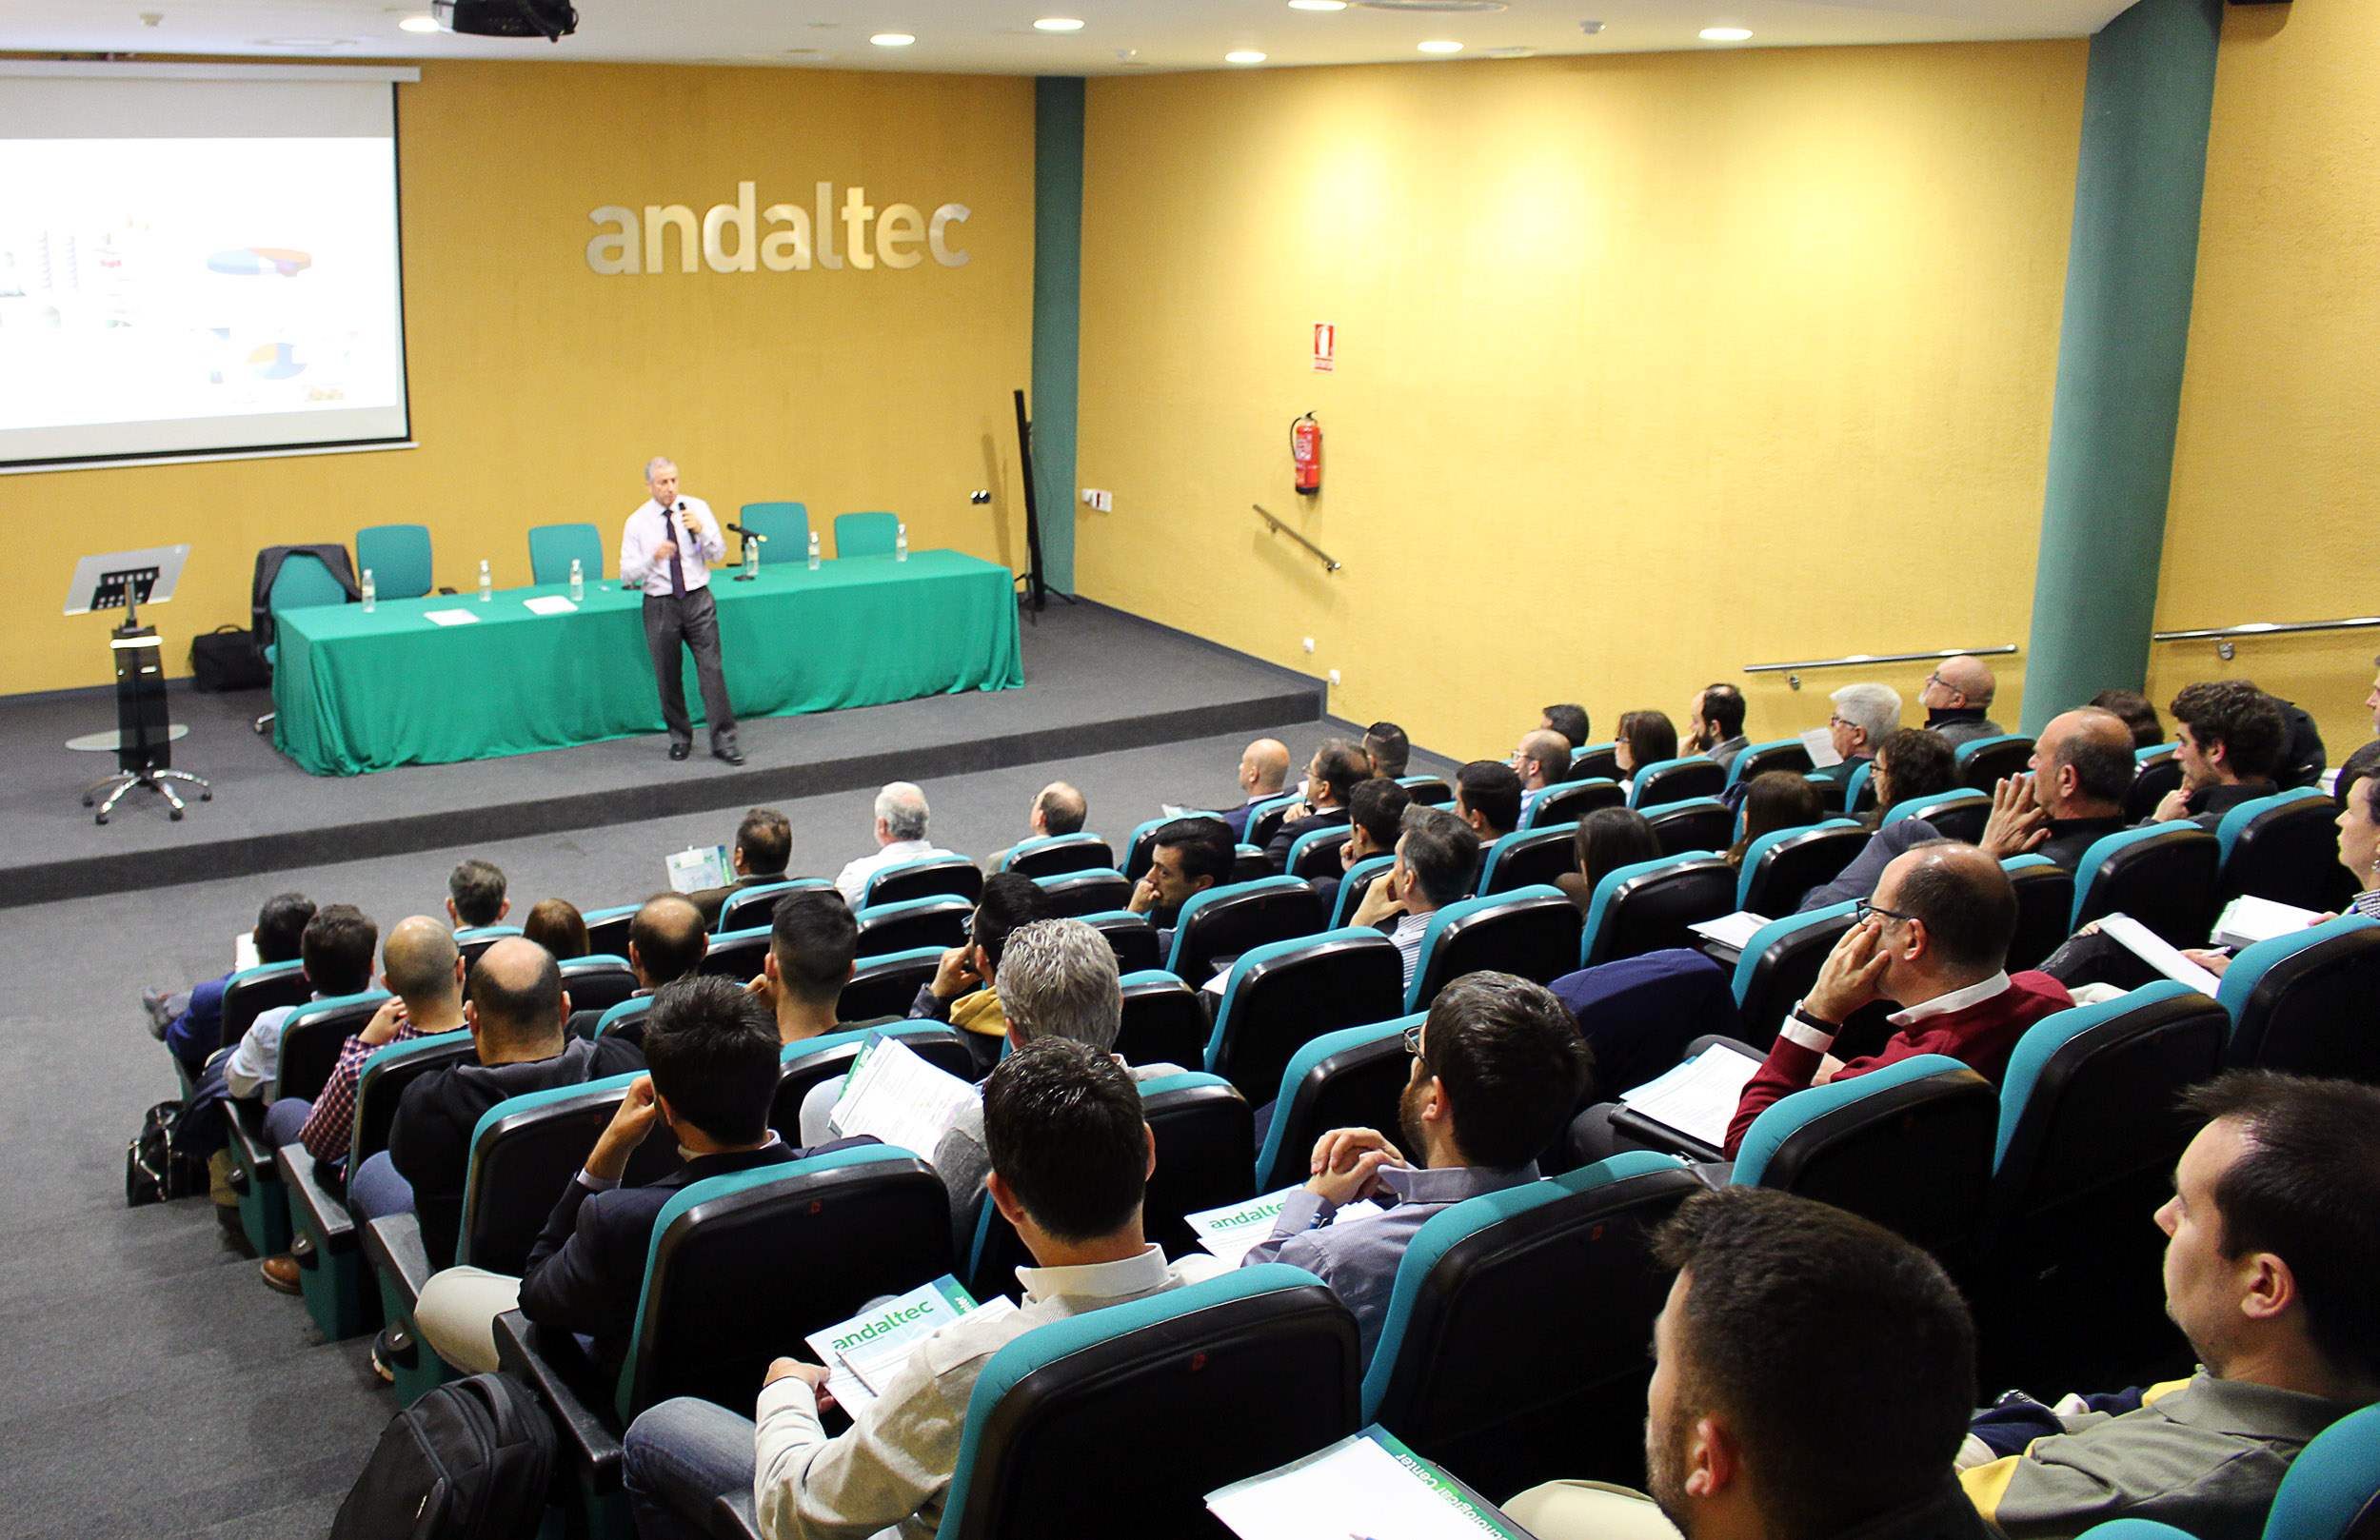 Andaltec technical conference on Biodegradable Plastics